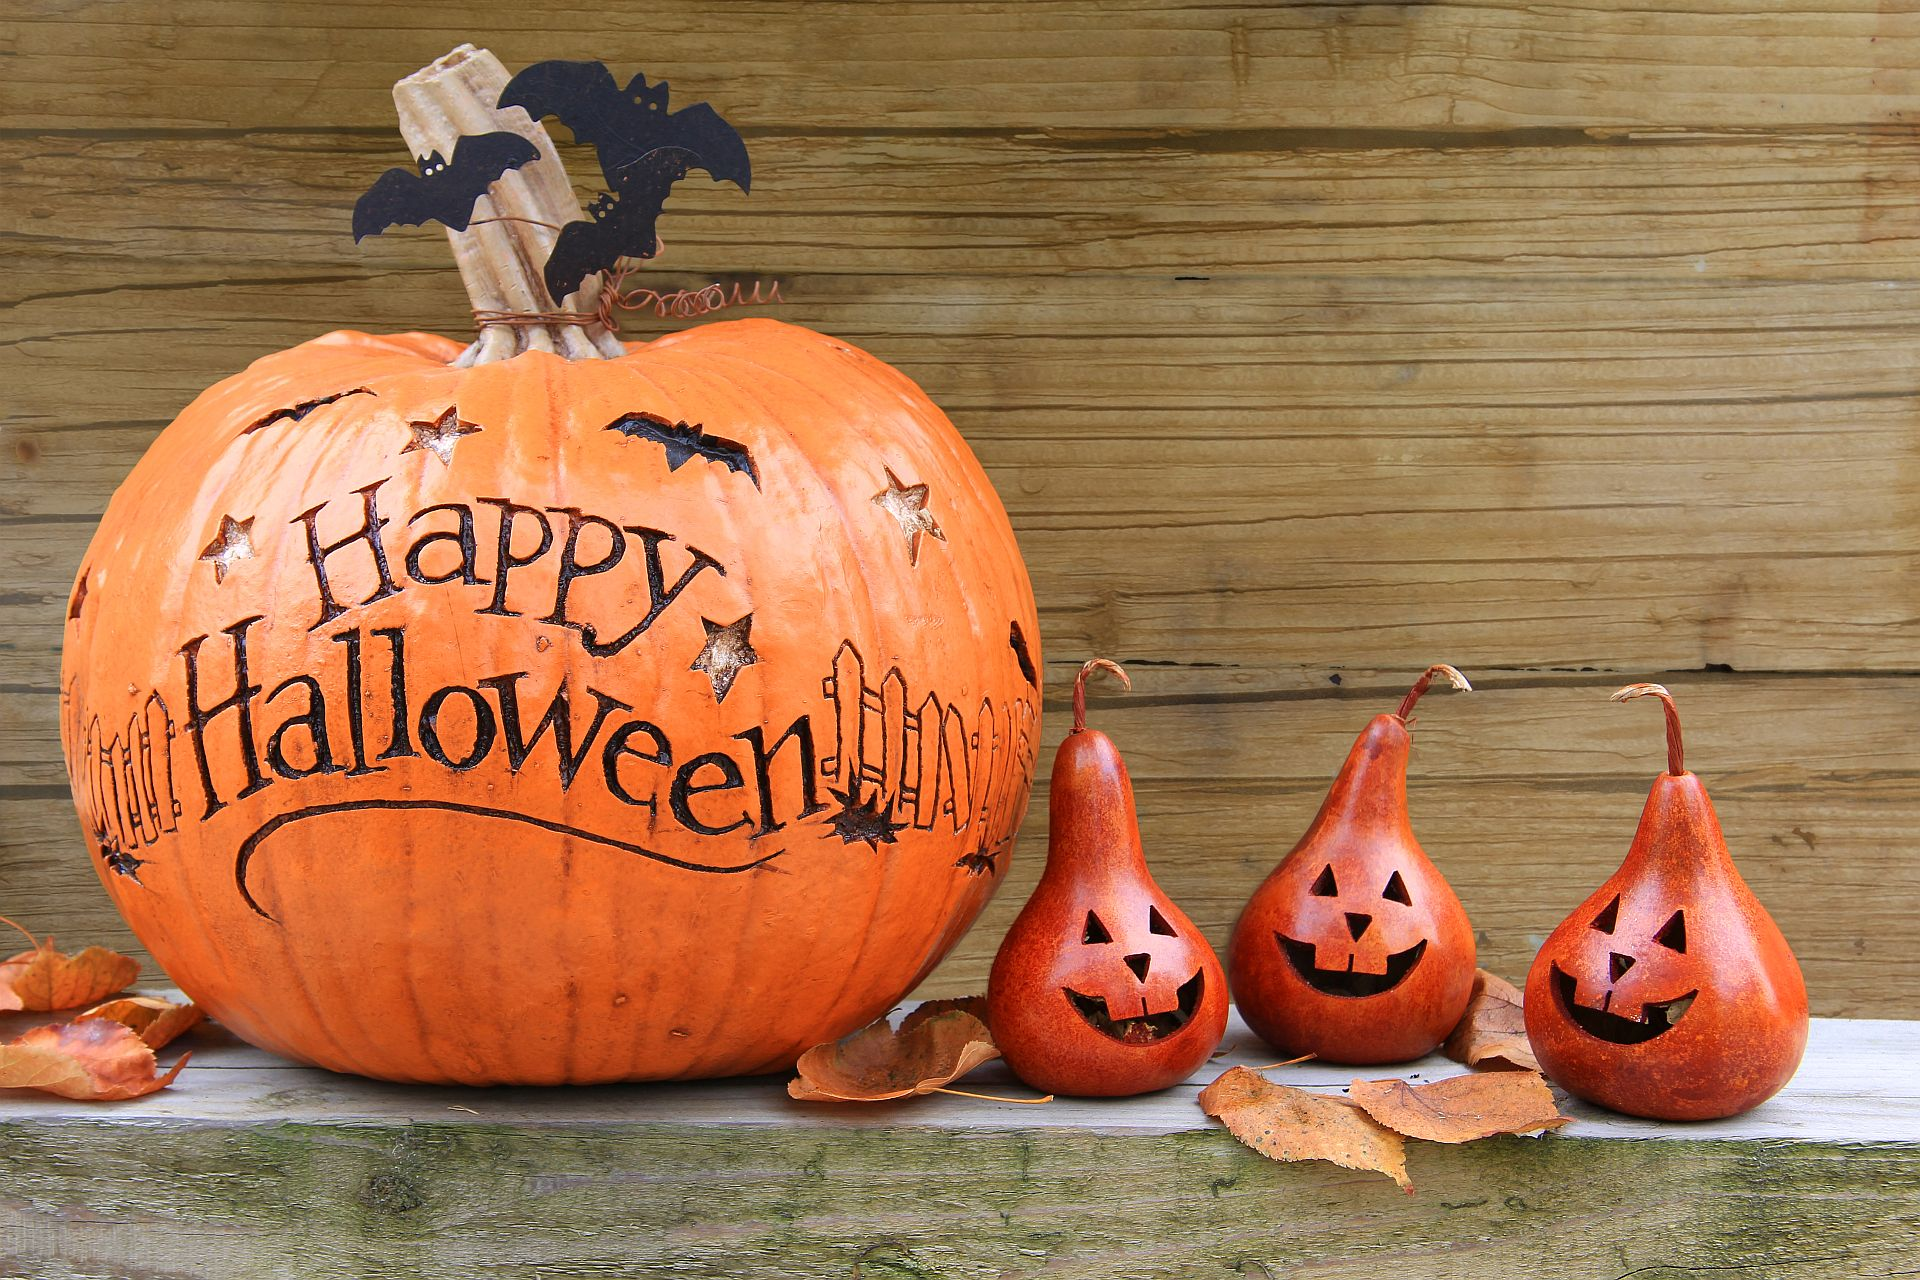 Wishing you a very Happy Halloween Scentbirdies